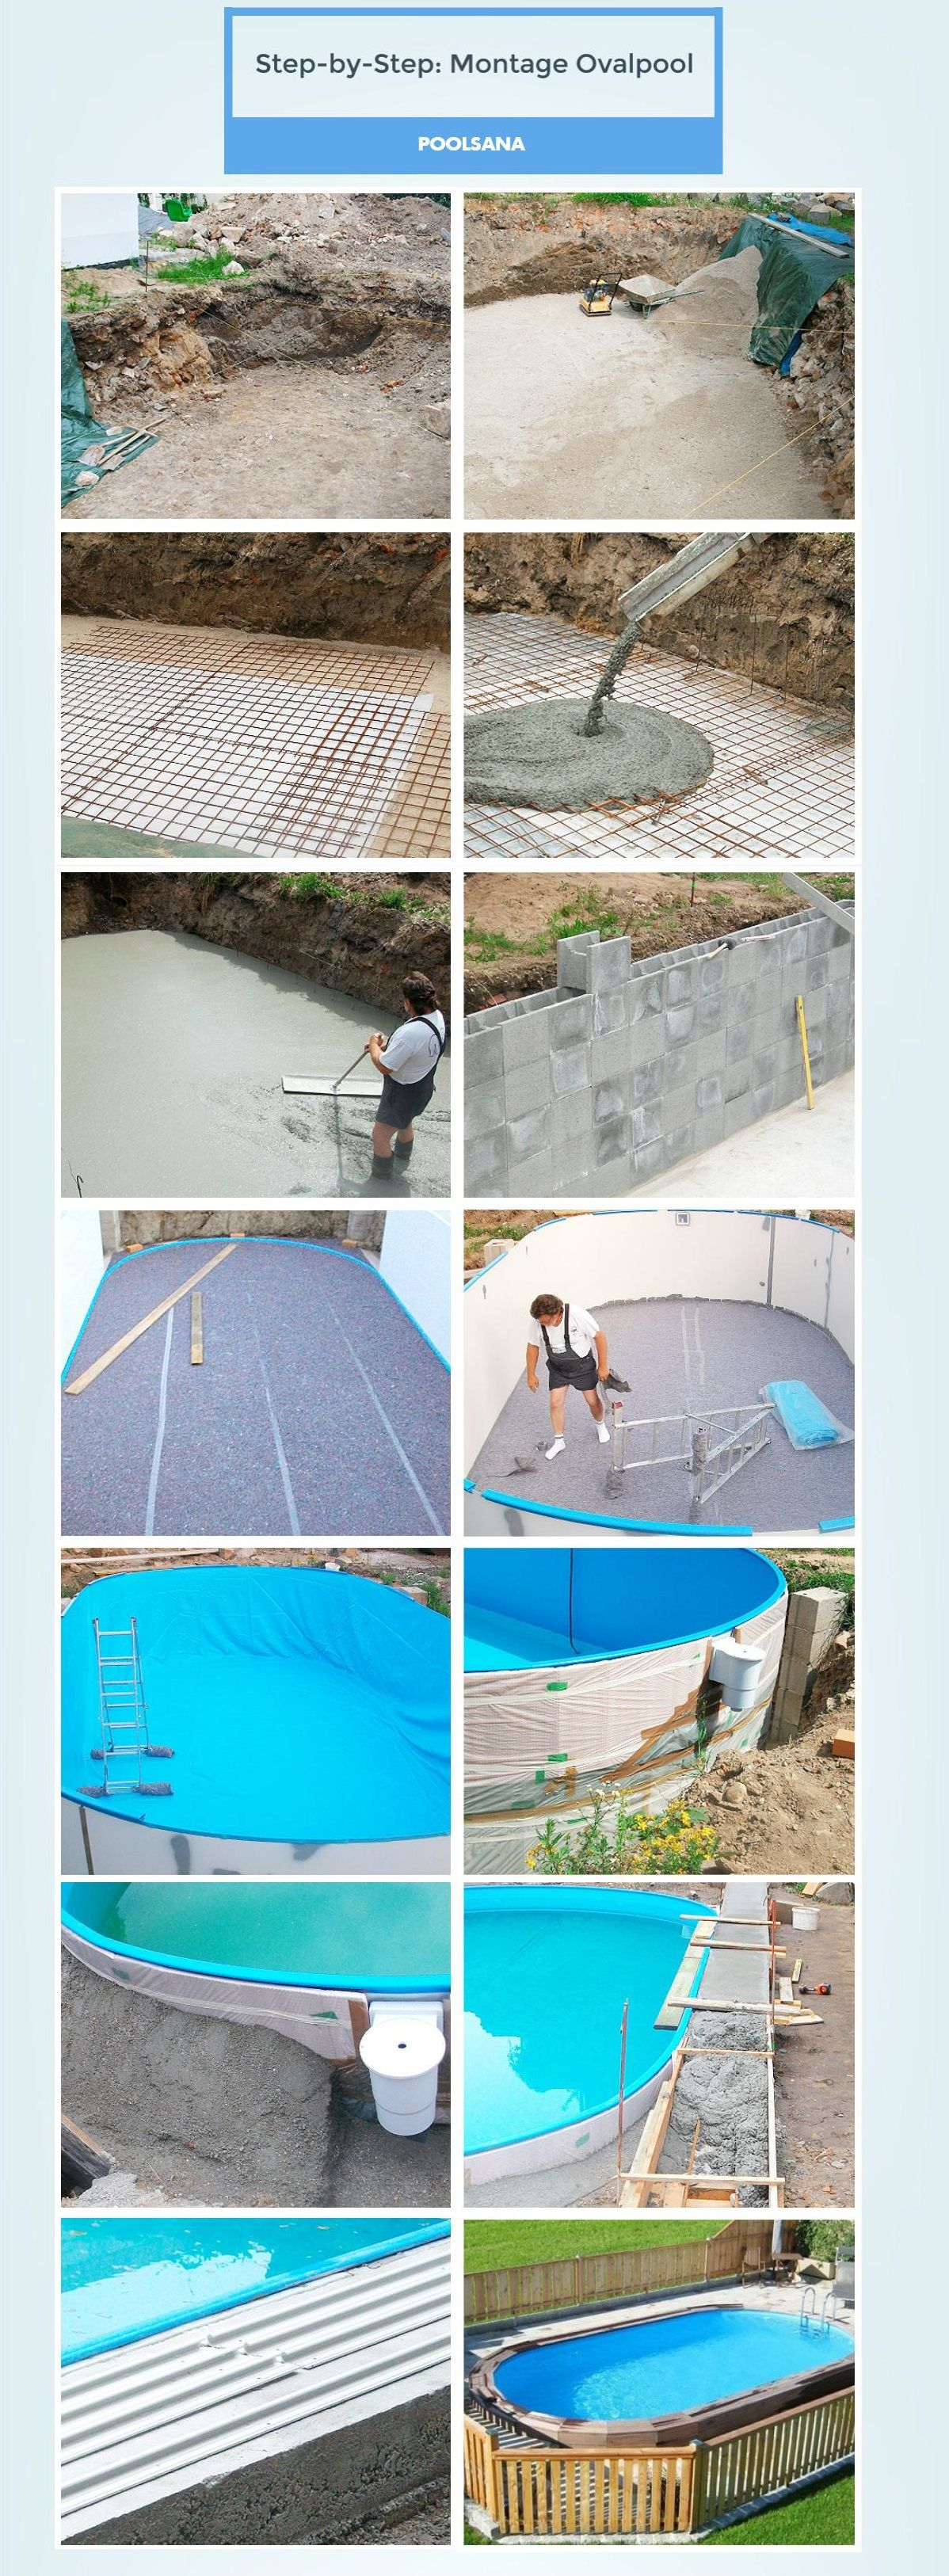 step by step den eigenen ovalpool aufbauen pool ovalpool diy peters gartentips pinterest. Black Bedroom Furniture Sets. Home Design Ideas